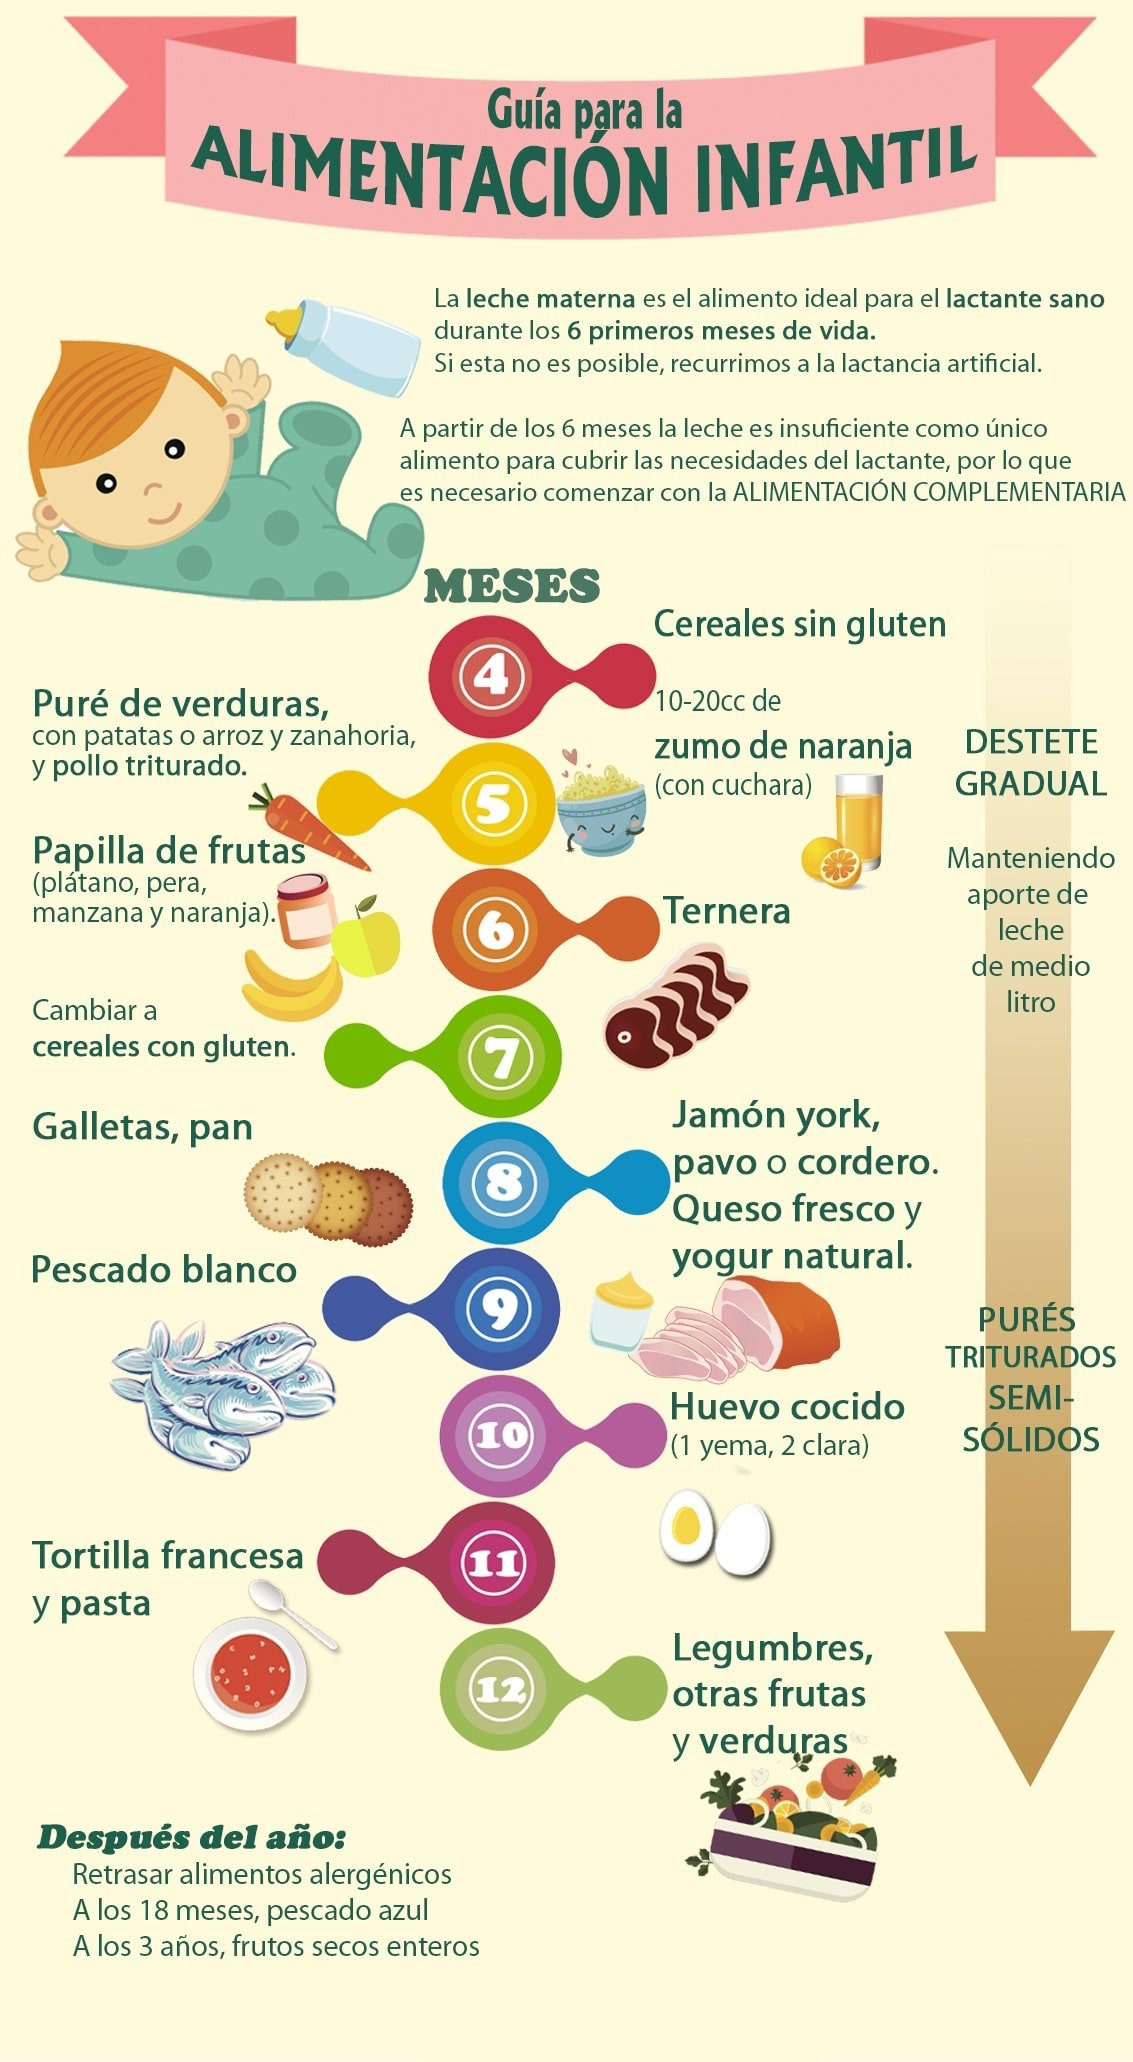 tabla-de-introduccion-de-alimentos-en-la-dieta-del-lactante